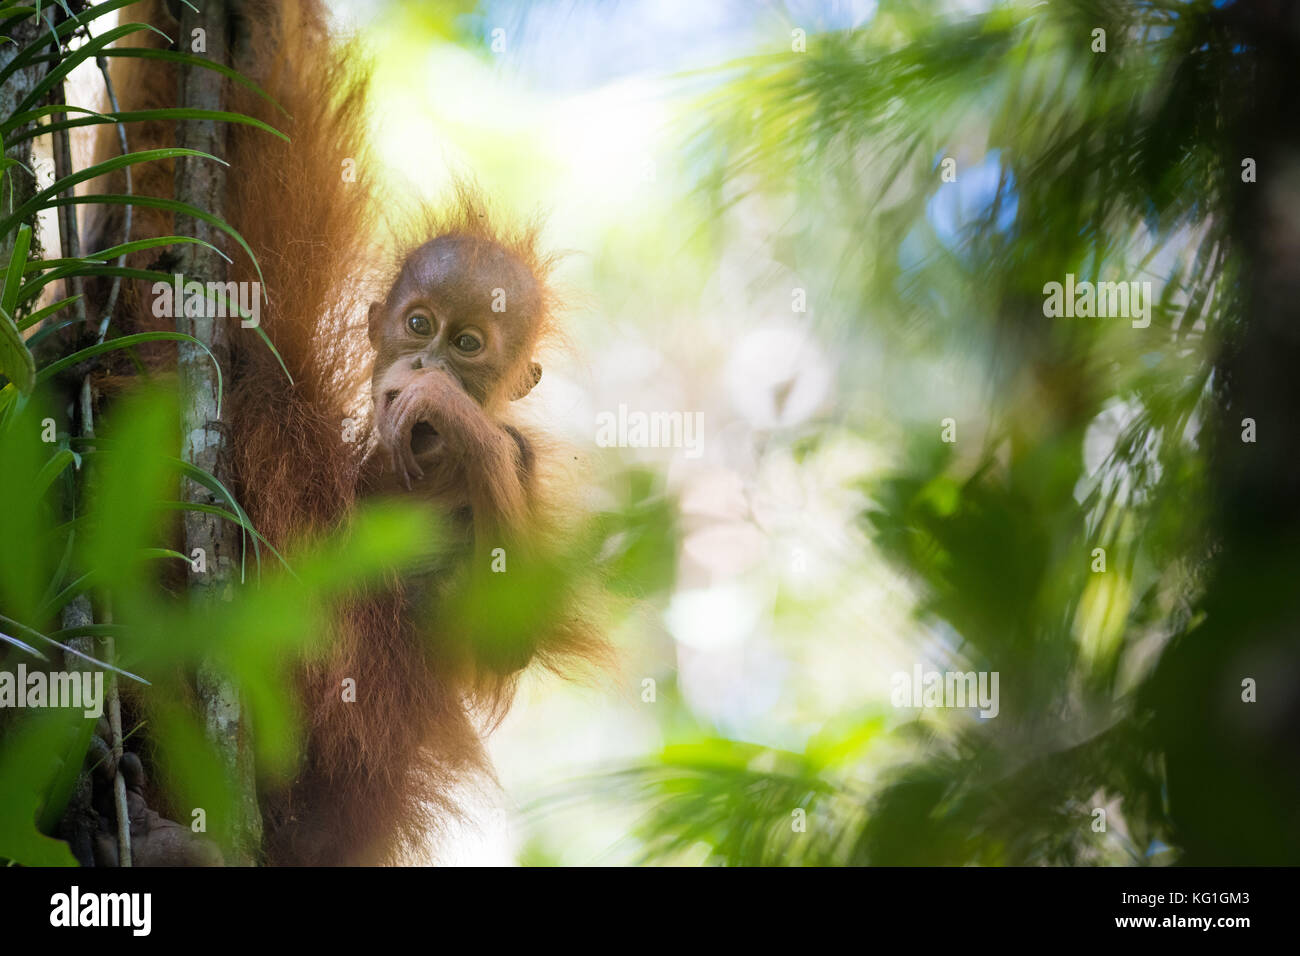 Beta, an adult female orangutan with her two year old infant, Bitang. New orangutan species discovered in Batang - Stock Image